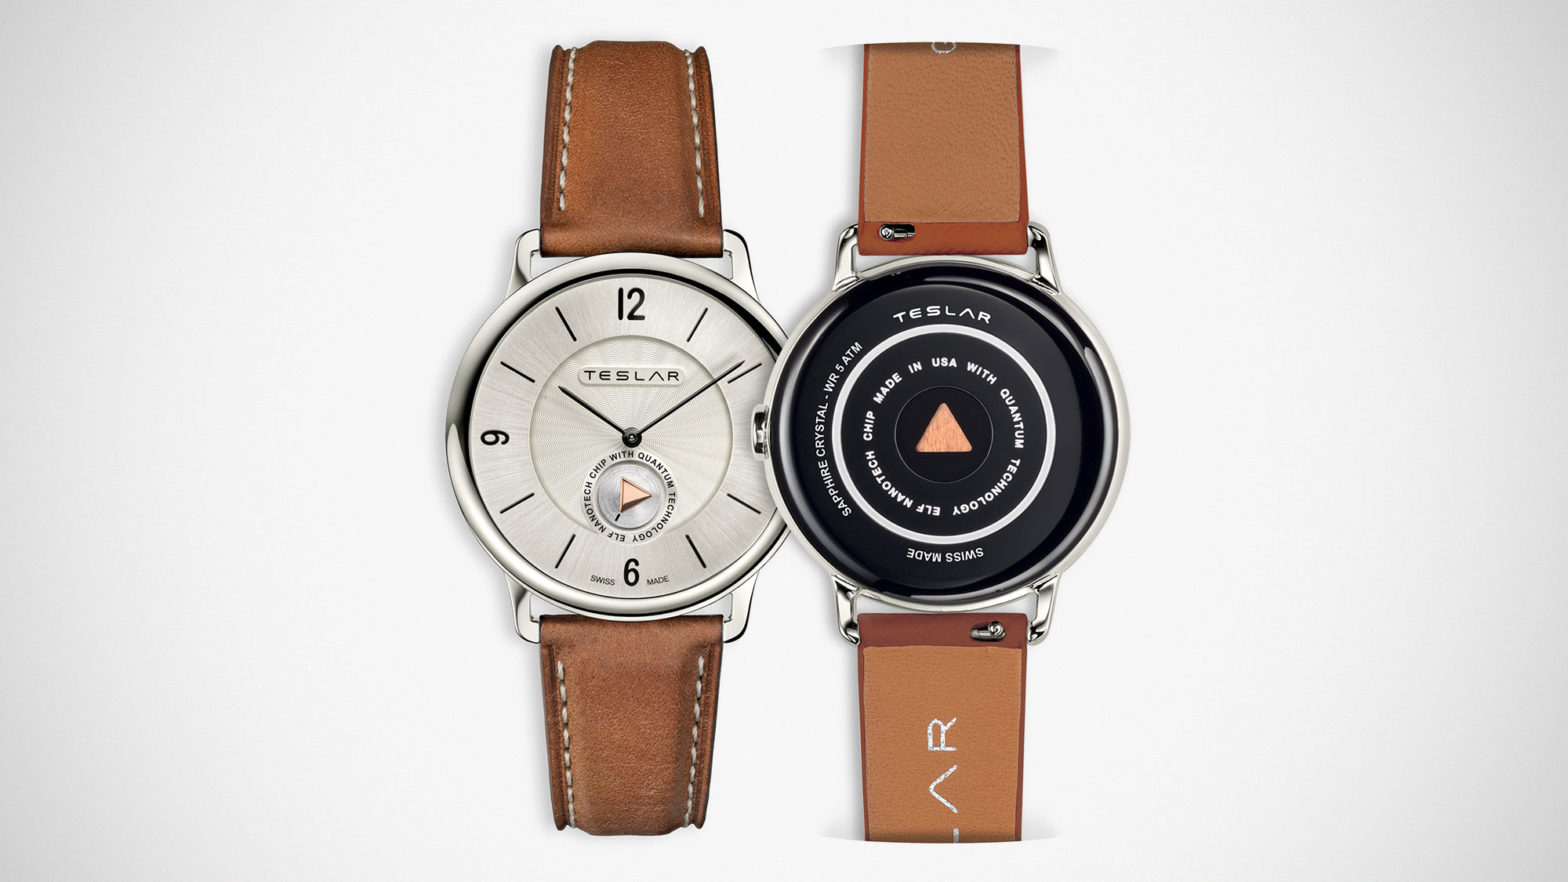 TESLAR Re-Balance Wellness Watch